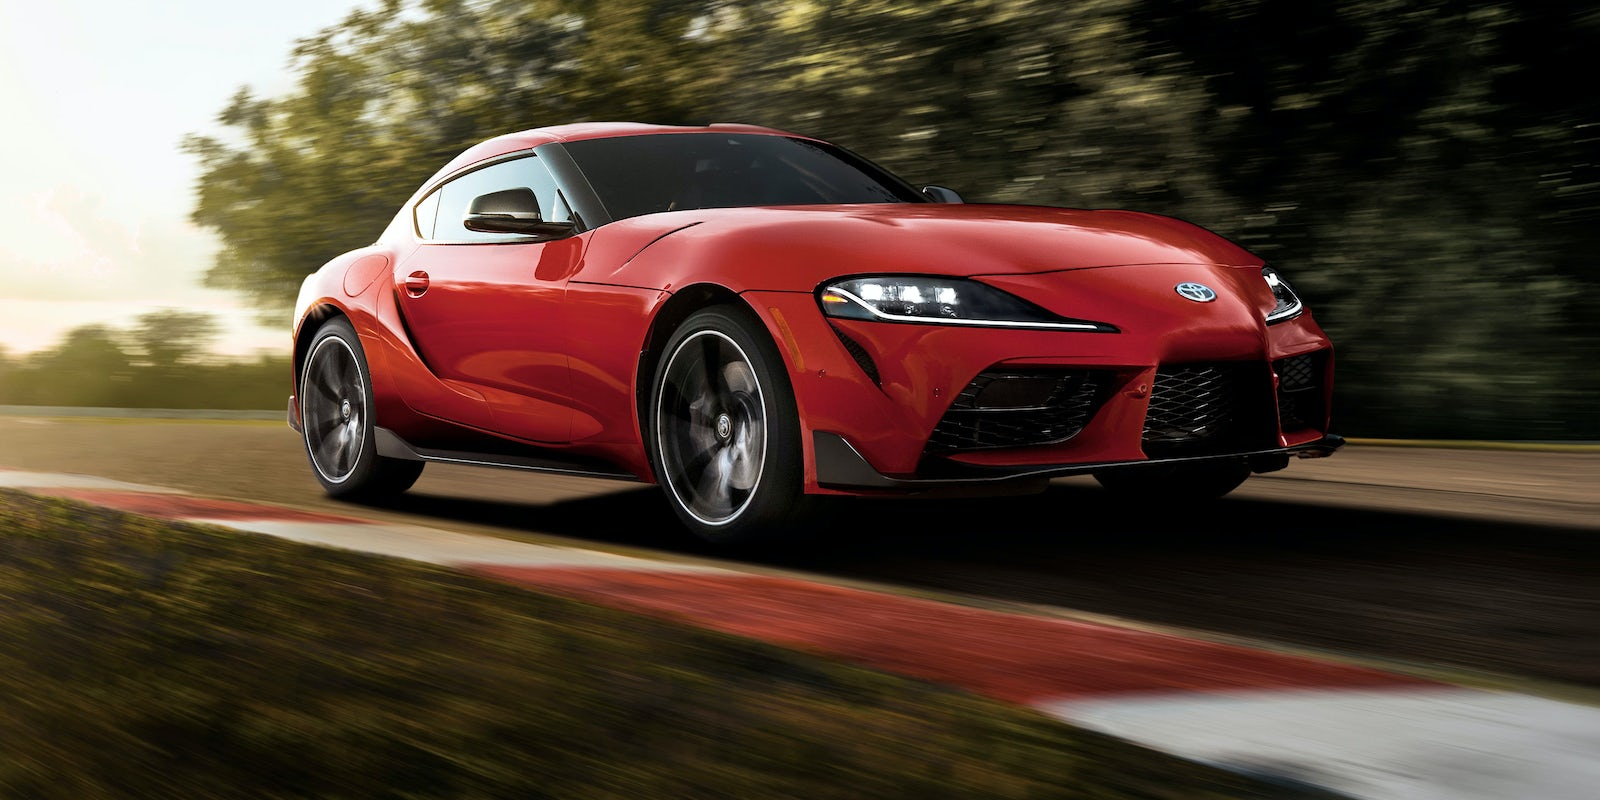 2020 Toyota Supra Price Specs And Release Date Carwow